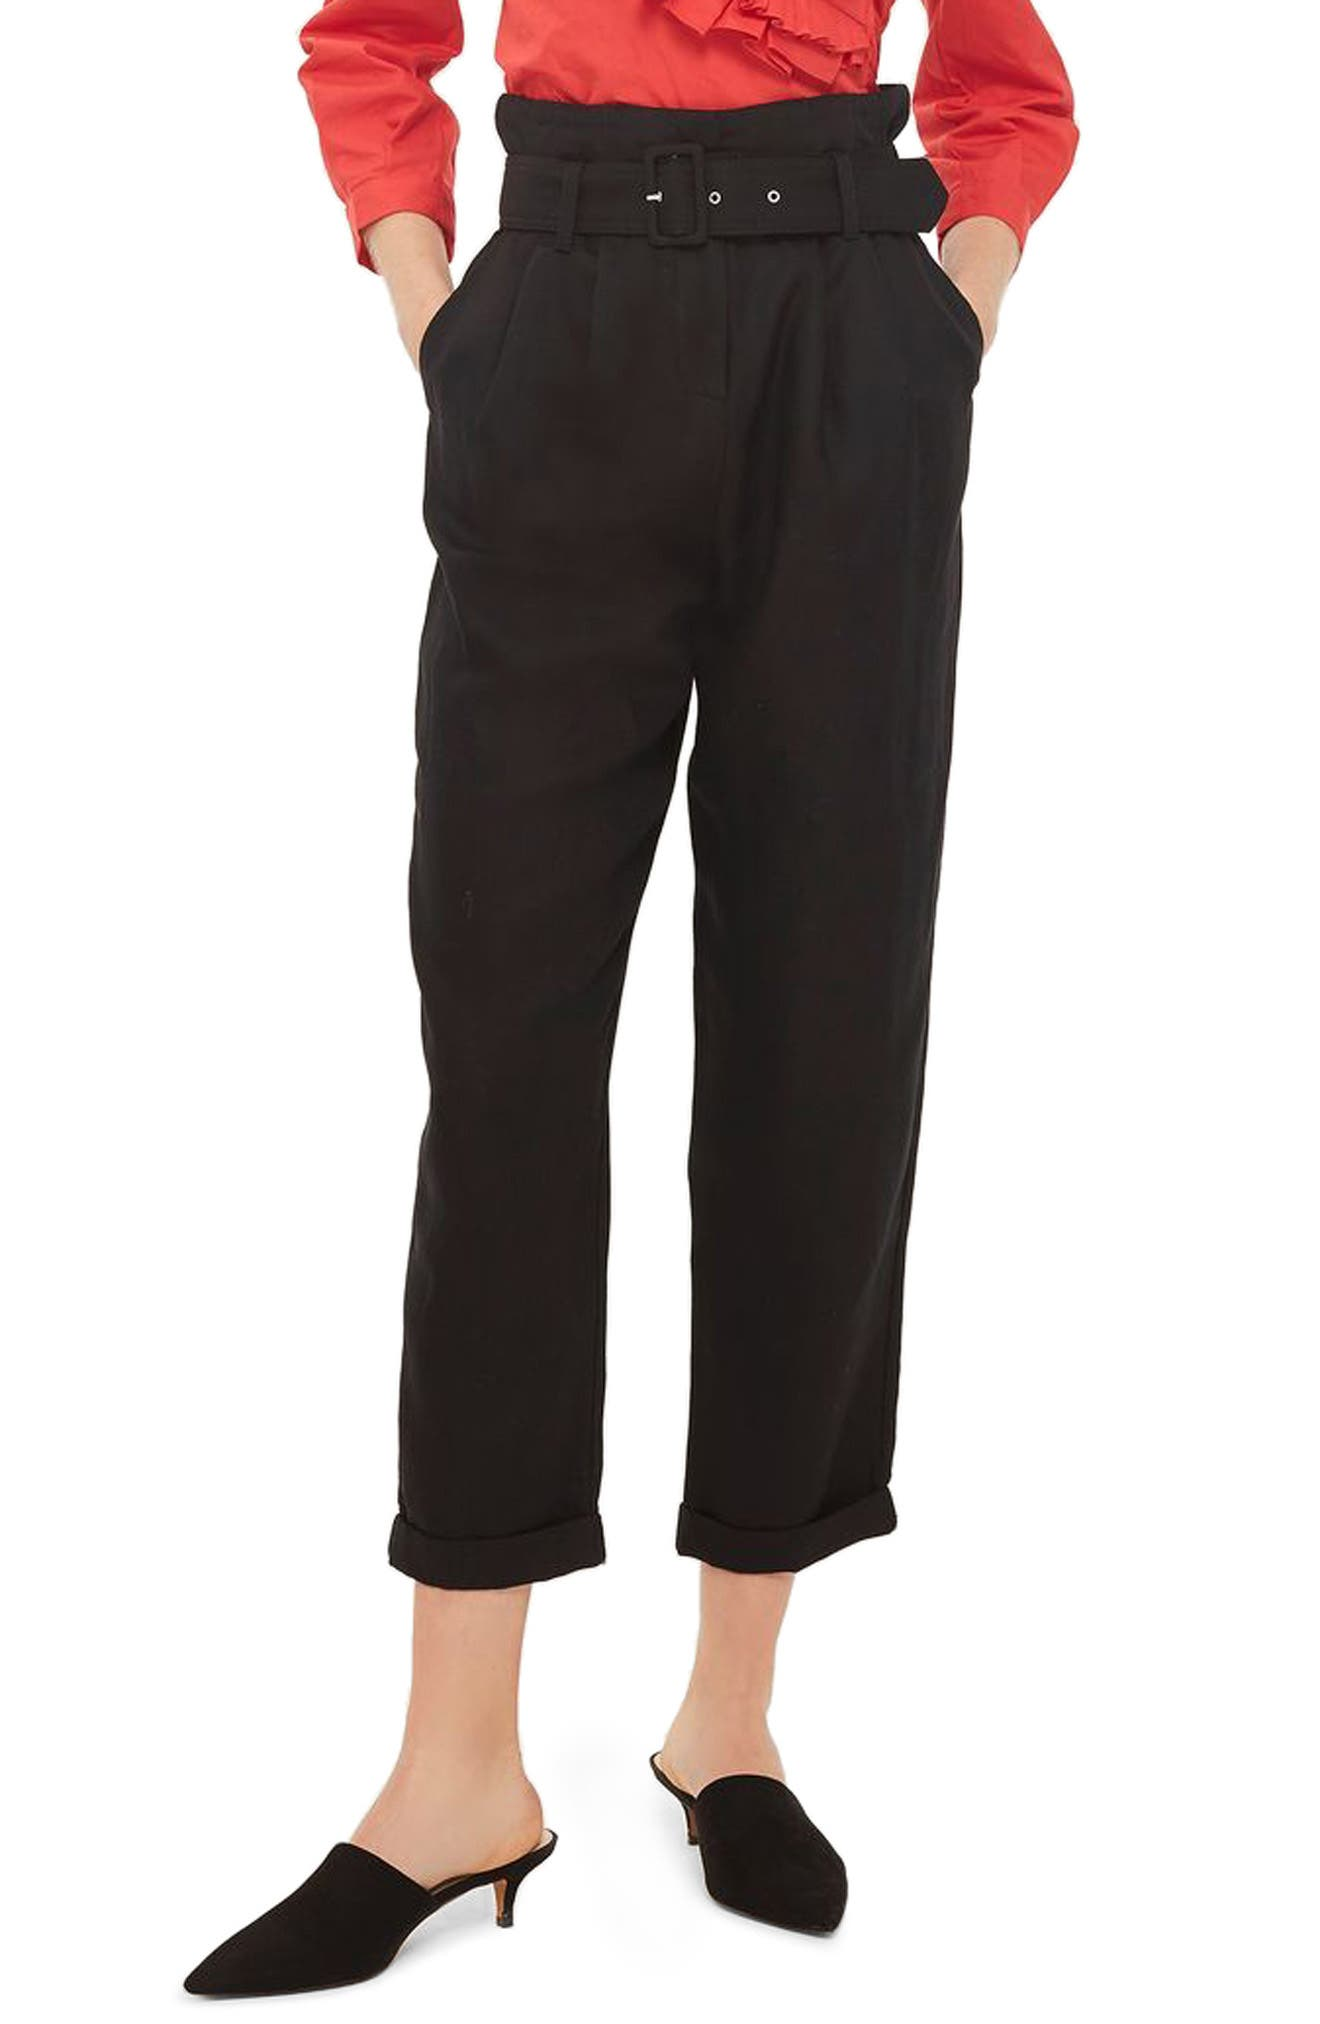 Mensy Belted Trousers,                         Main,                         color, 001